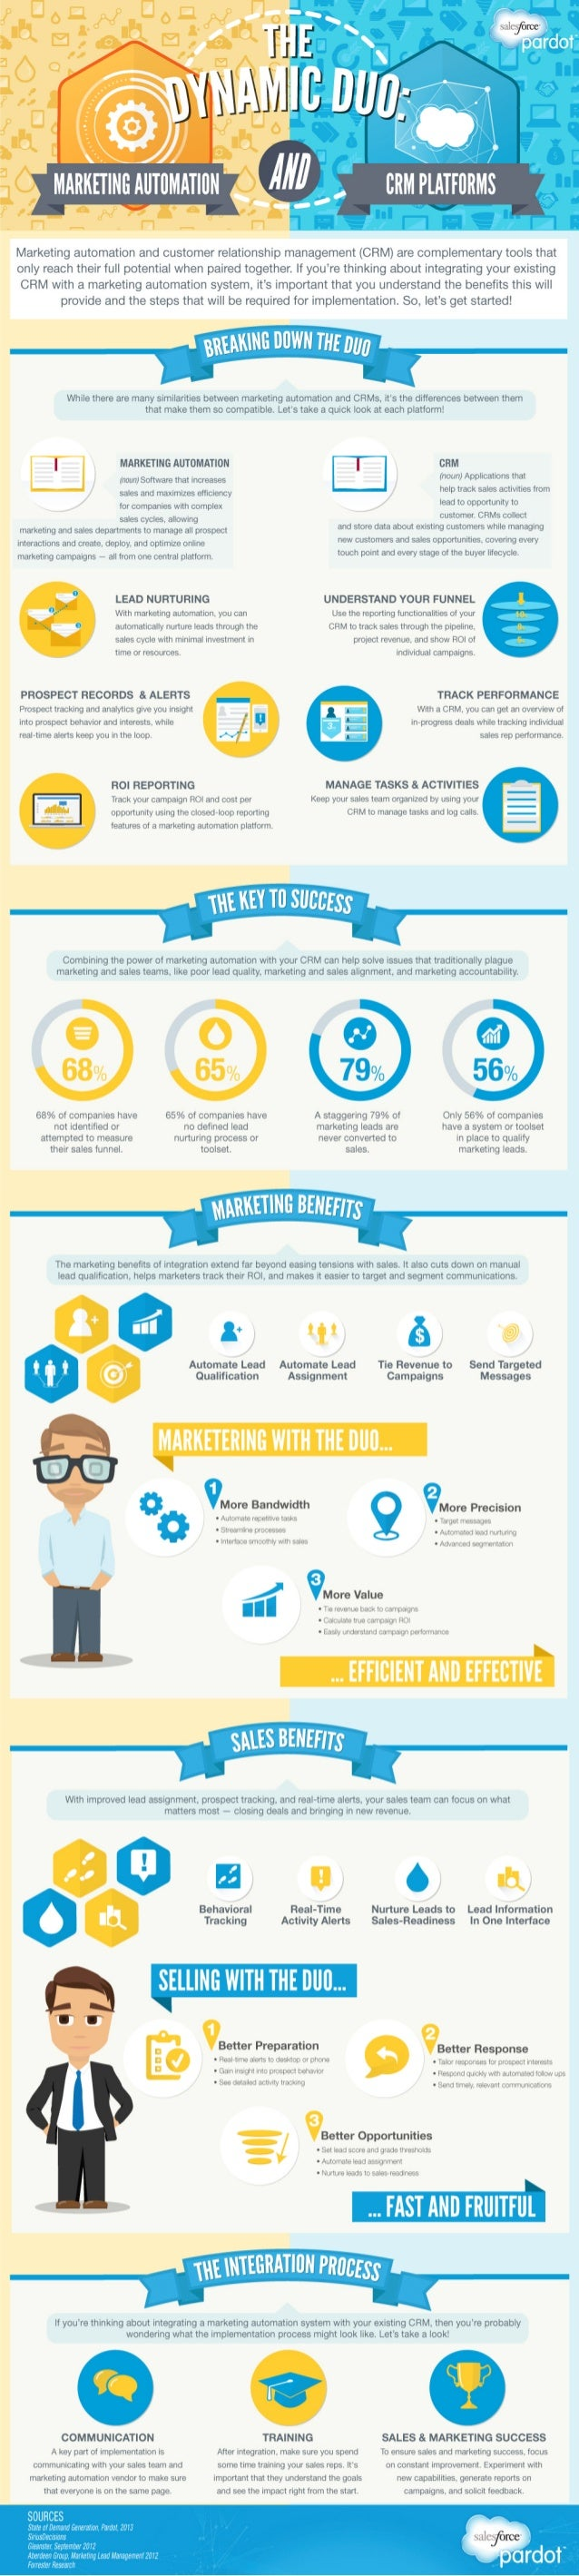 The Dynamic Duo: Marketing Automation & CRM Platforms [Infographic]